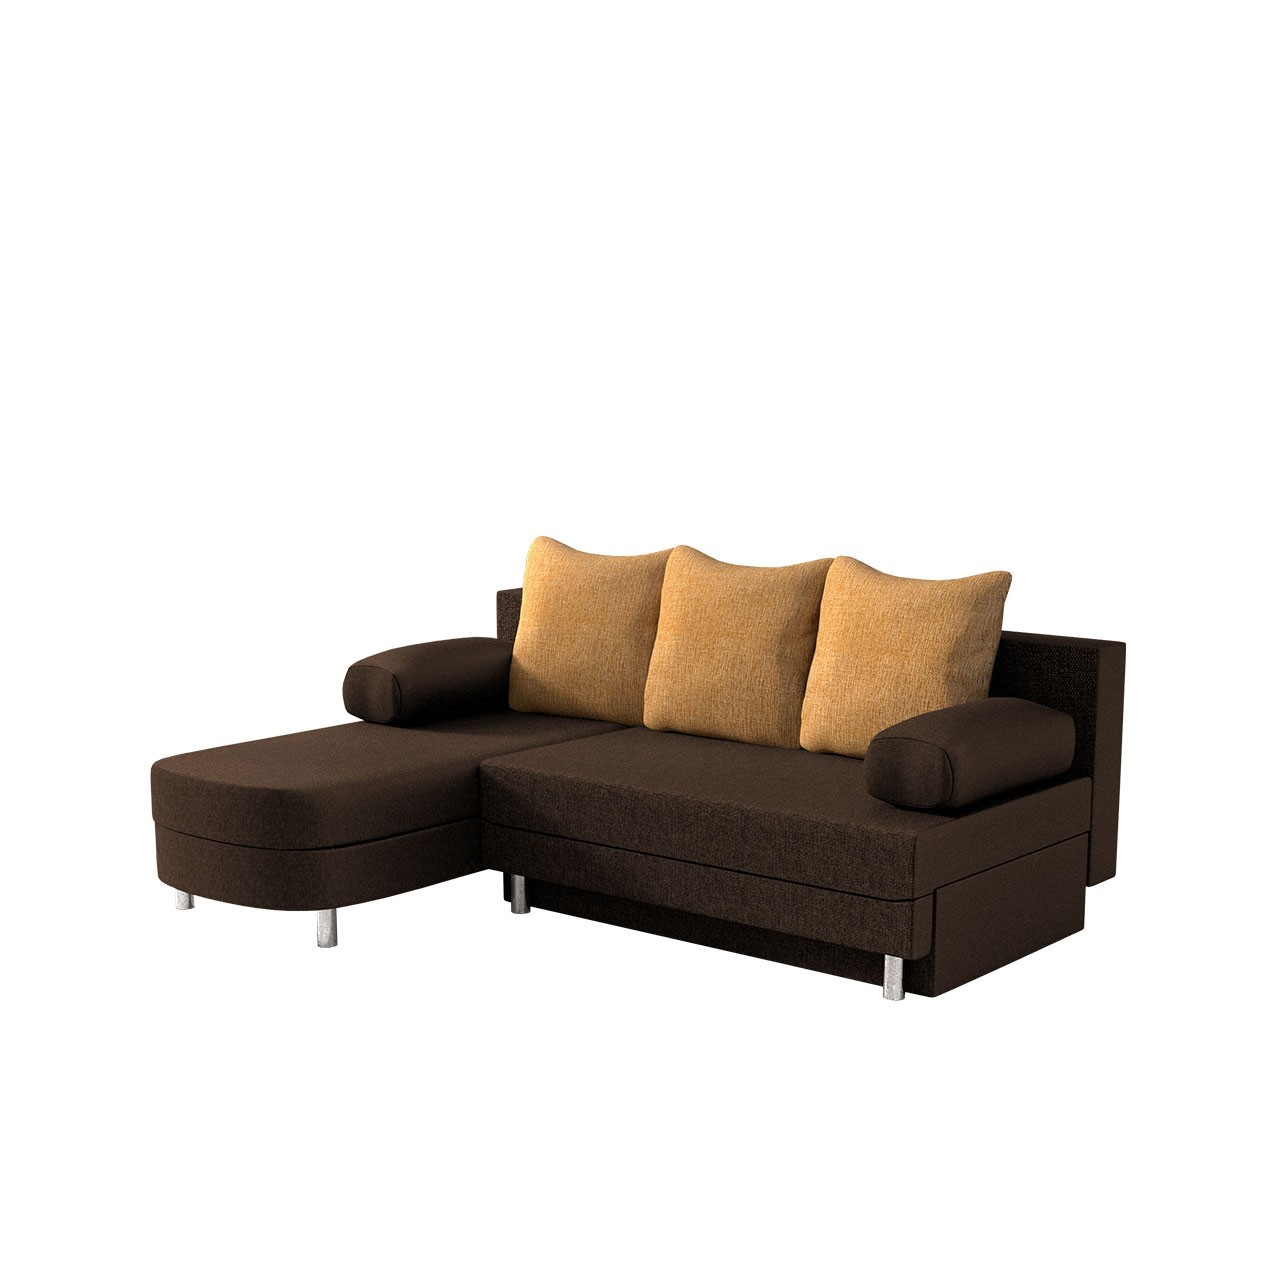 ecksofa molly sale mit schlaffunktion und bettkasten mirjan24. Black Bedroom Furniture Sets. Home Design Ideas